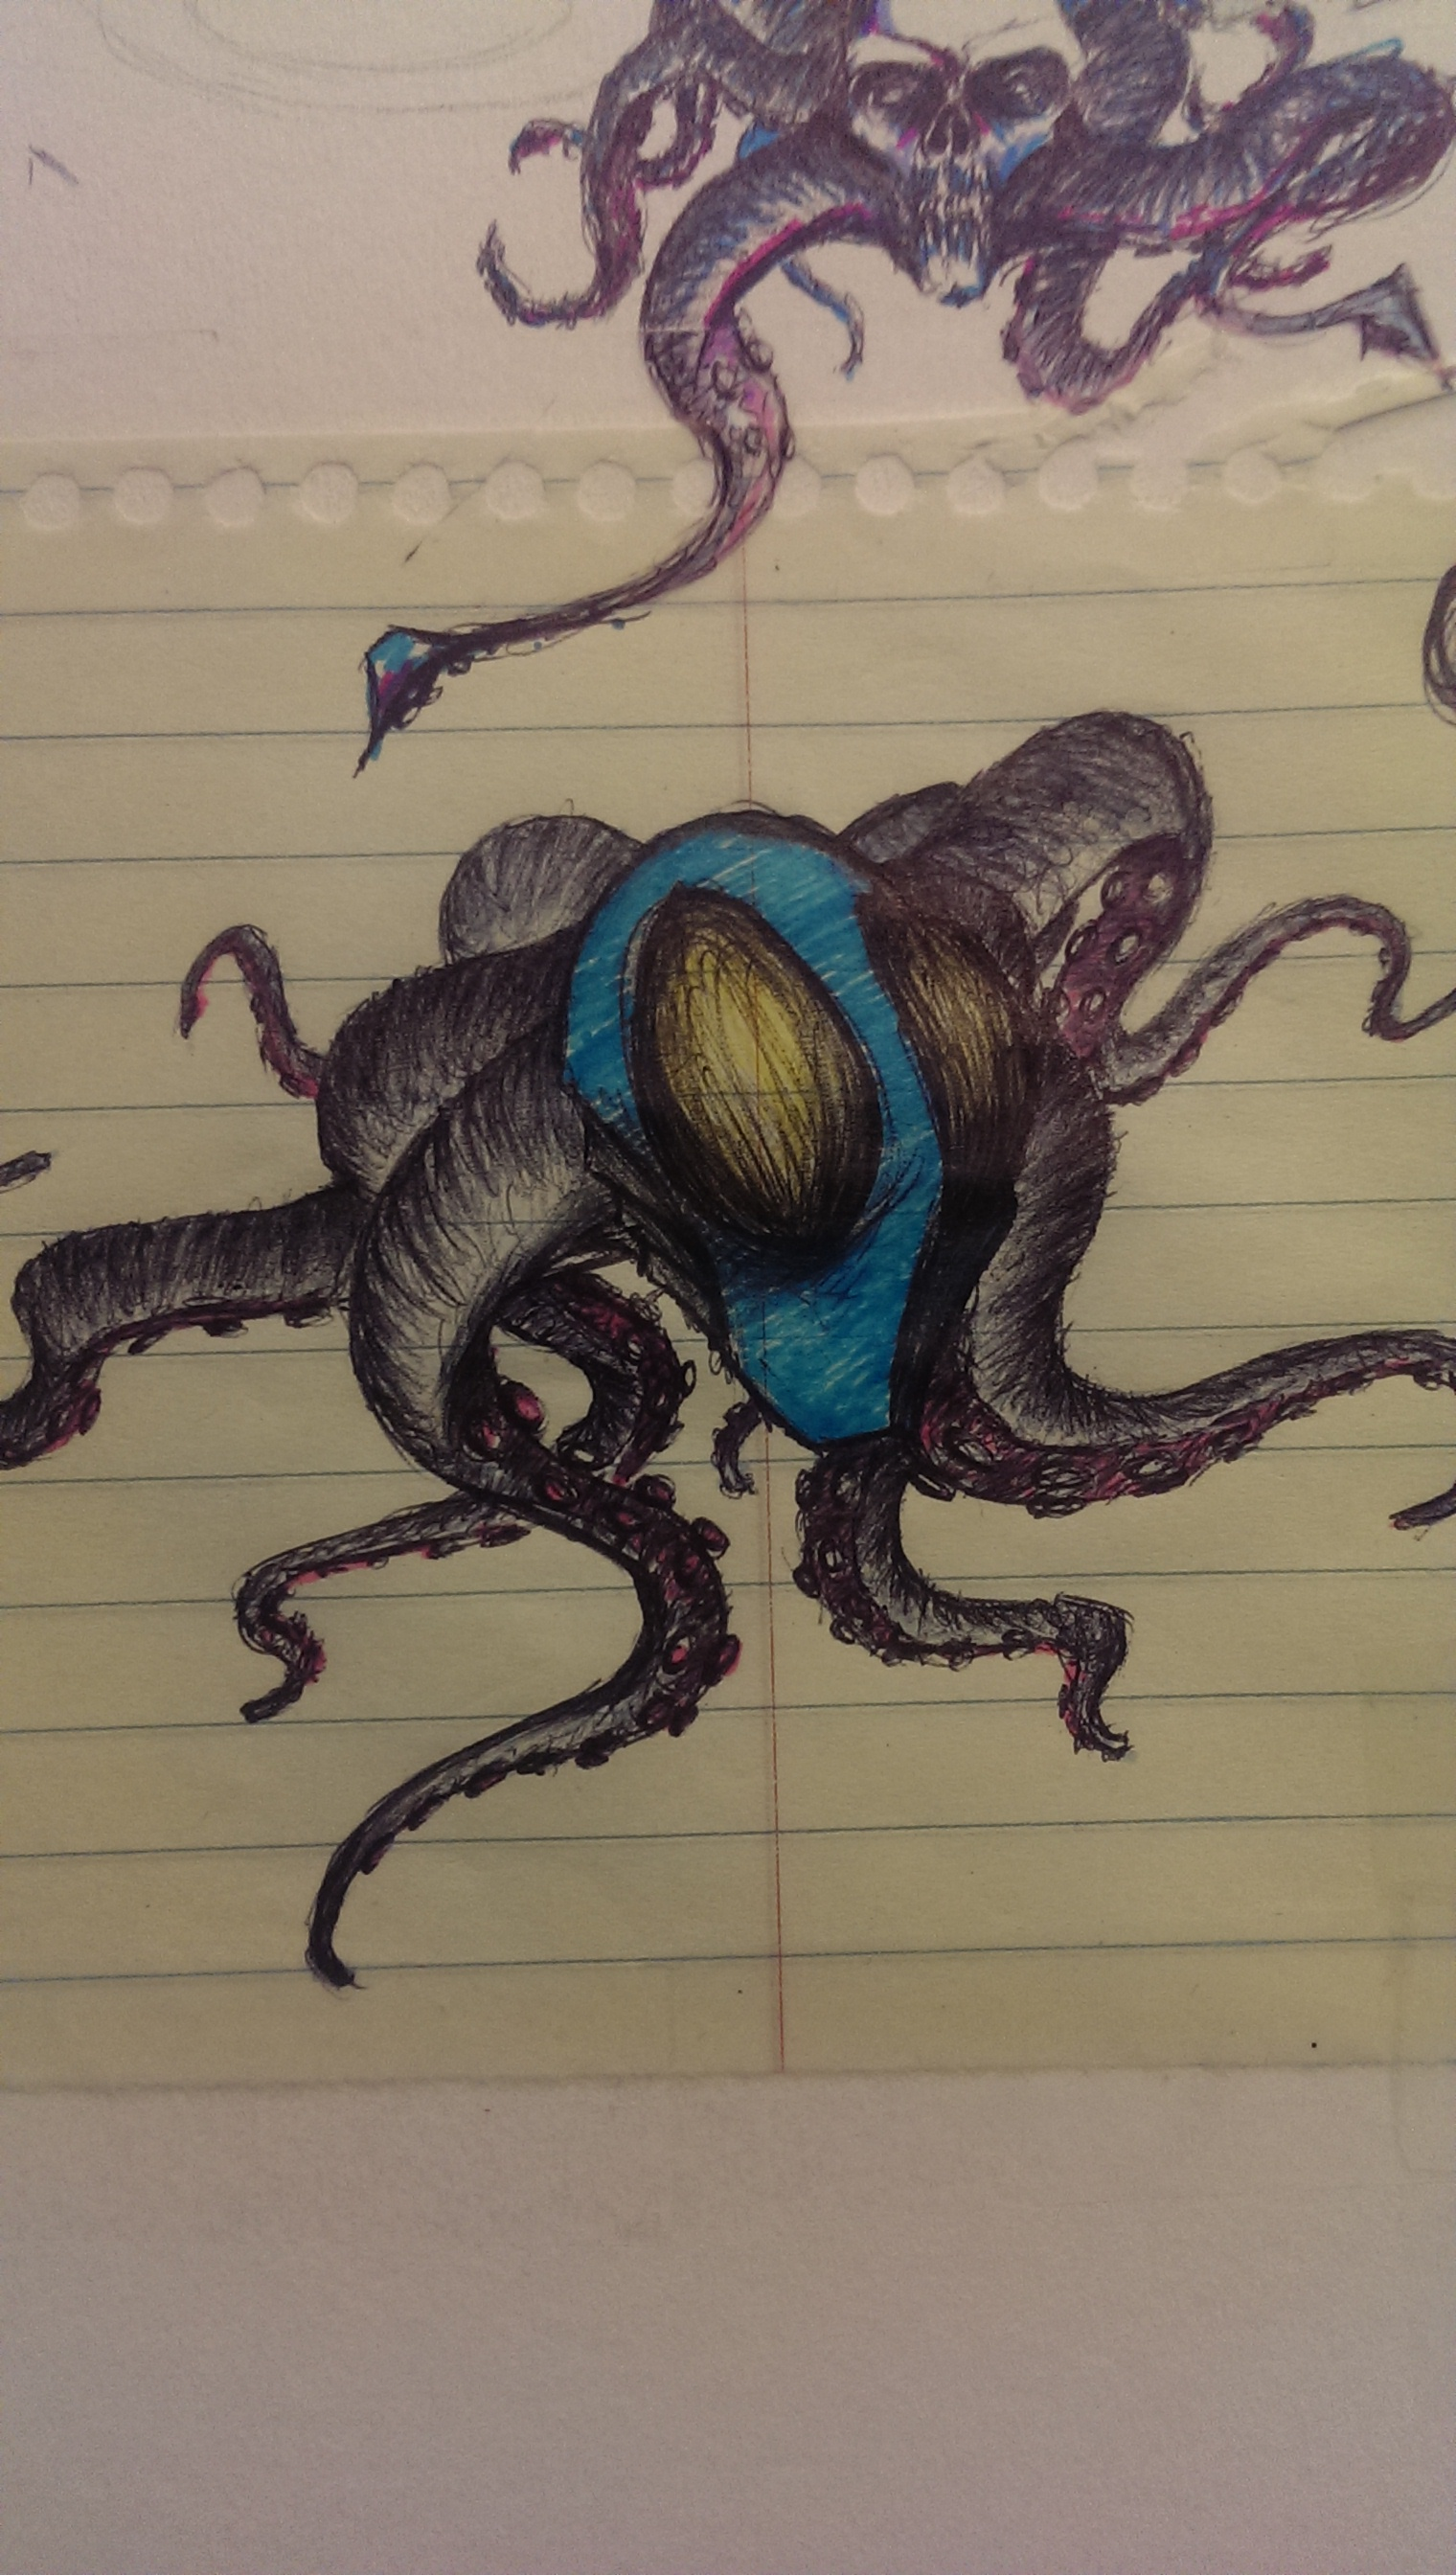 sketch in pen and colored pencil